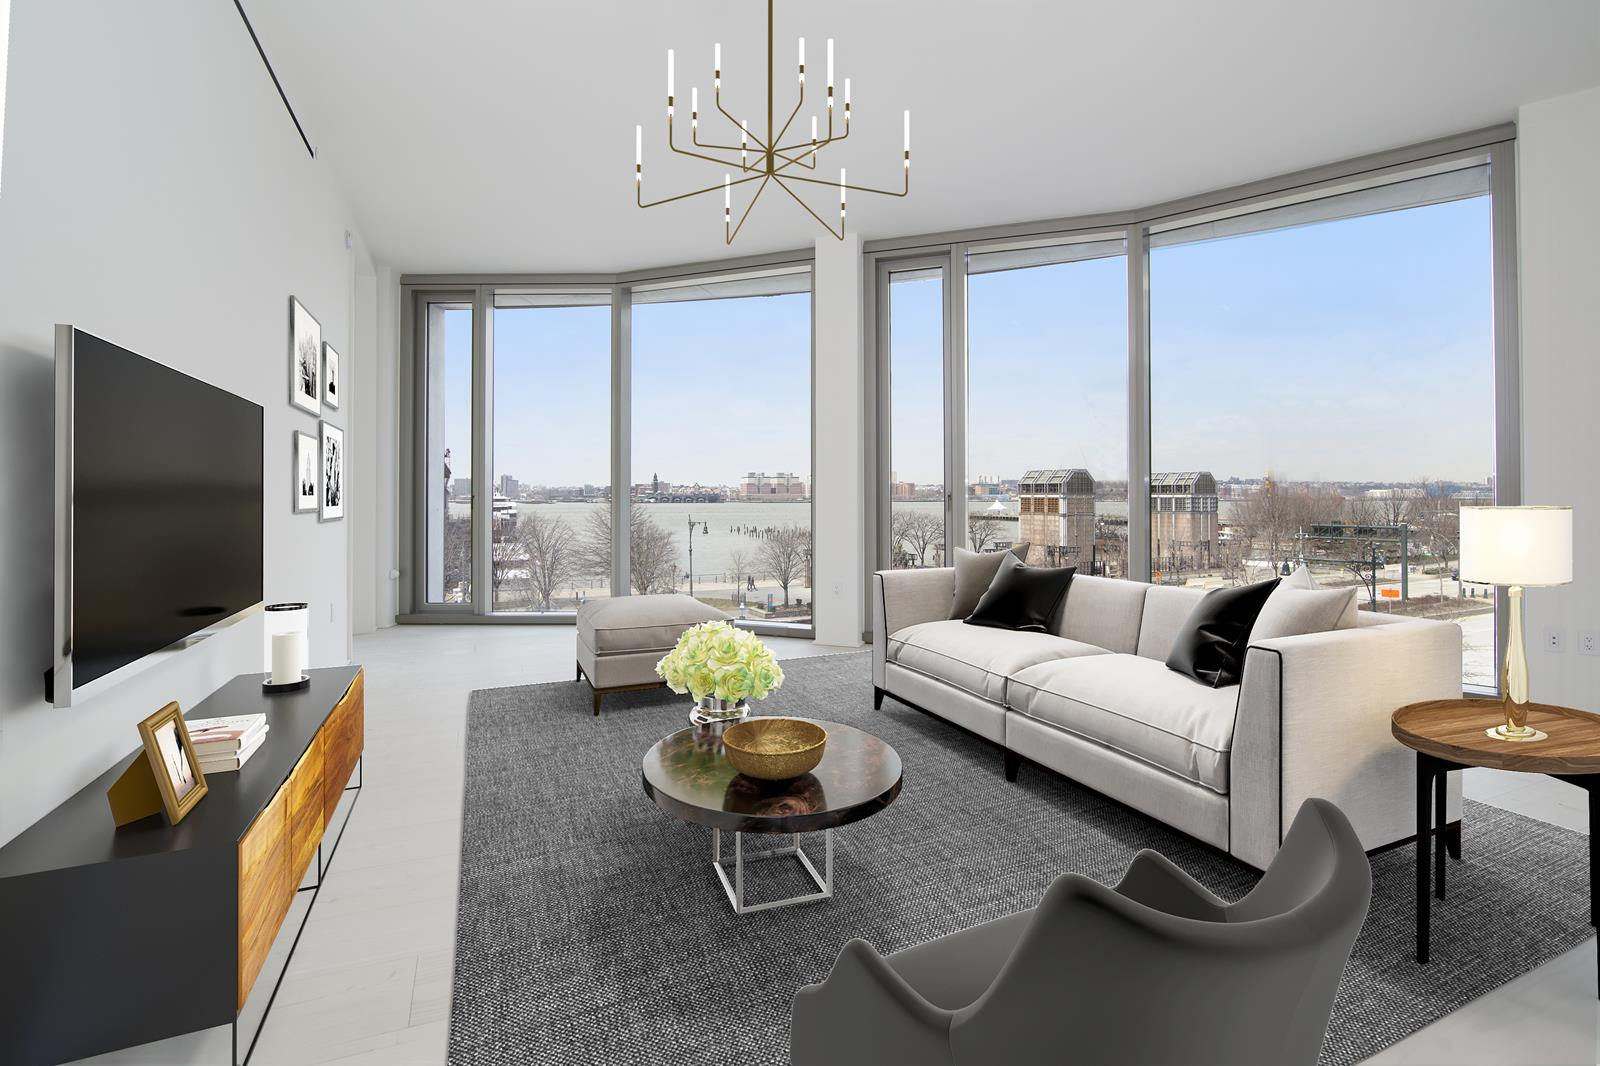 Spectacular Hudson River views from every room of this 1,751 SF 2-bedroom, 2.5-bathroom home. 85 feet of frontage on the Hudson River, 11-foot ceilings, 4 major art walls and unrivaled amenities. Conceptualized by Ian Schrager and designed by Herzog & de Meuron. Be the first to enjoy this truly special home. Apartment features: A carefully crafted floor plan designed for modern living. 12-inch wide-plank Scandinavian Larchwood floors throughout, floor-to-ceiling windows and 11 -foot ceilings. The oversized great room offers incredible light, air and flow. The powder room is paneled in Scandinavian Larchwood and finished with a custom vanity. Bulthaup kitchen with Larchwood cabinets, Sivec marble slab countertops, backsplash and breakfast bar.  All appliances are fully integrated and include a Sub-zero refrigerator, Gaggenau cooktop, Wolf steam oven, Miele dishwasher, Sub-Zero wine refrigerator and a Miele coffee station. The master bedroom suite has a dressing area and a large walk-in closet. The en-suite master bath is fully clad in Sivec marble and offers a large stall shower, soaking tub, double vanity, radiant heated floors and a separate water closet. The second bedroom or library with en-suite bath has a large stall shower and custom vanity with travertine stone walls. California closets in the entire apartment. White sheer curtains throughout the apartment plus blackouts in both bedrooms. All lighting is on a dimming system plus multiple HVAC system zones. Vented washer and dryer. Triple pane windows with UVB/UVA protected glass. No pets. Building Features: A private cobblestone driveway, lush landscaped park by Madison Cox, professional spa with 70-foot pool, whirlpool, fitness center, yoga/pilates studio, steam room, sauna, massage room, club house with catering kitchen and a children's play room. 160 Leroy is situated on a cobblestone street in the heart of the West Village and is conveniently located across from The Hudson River Park and bike paths, steps to The Highline Park, Meatpacking District, home of the Whitney Museum, fabled Bleecker Street, and some of the city's best shopping and restaurants.NET EFFECTIVE RENT ADVERTISED. The advertised rent represents the NER on a 12 month lease with 1 month free.